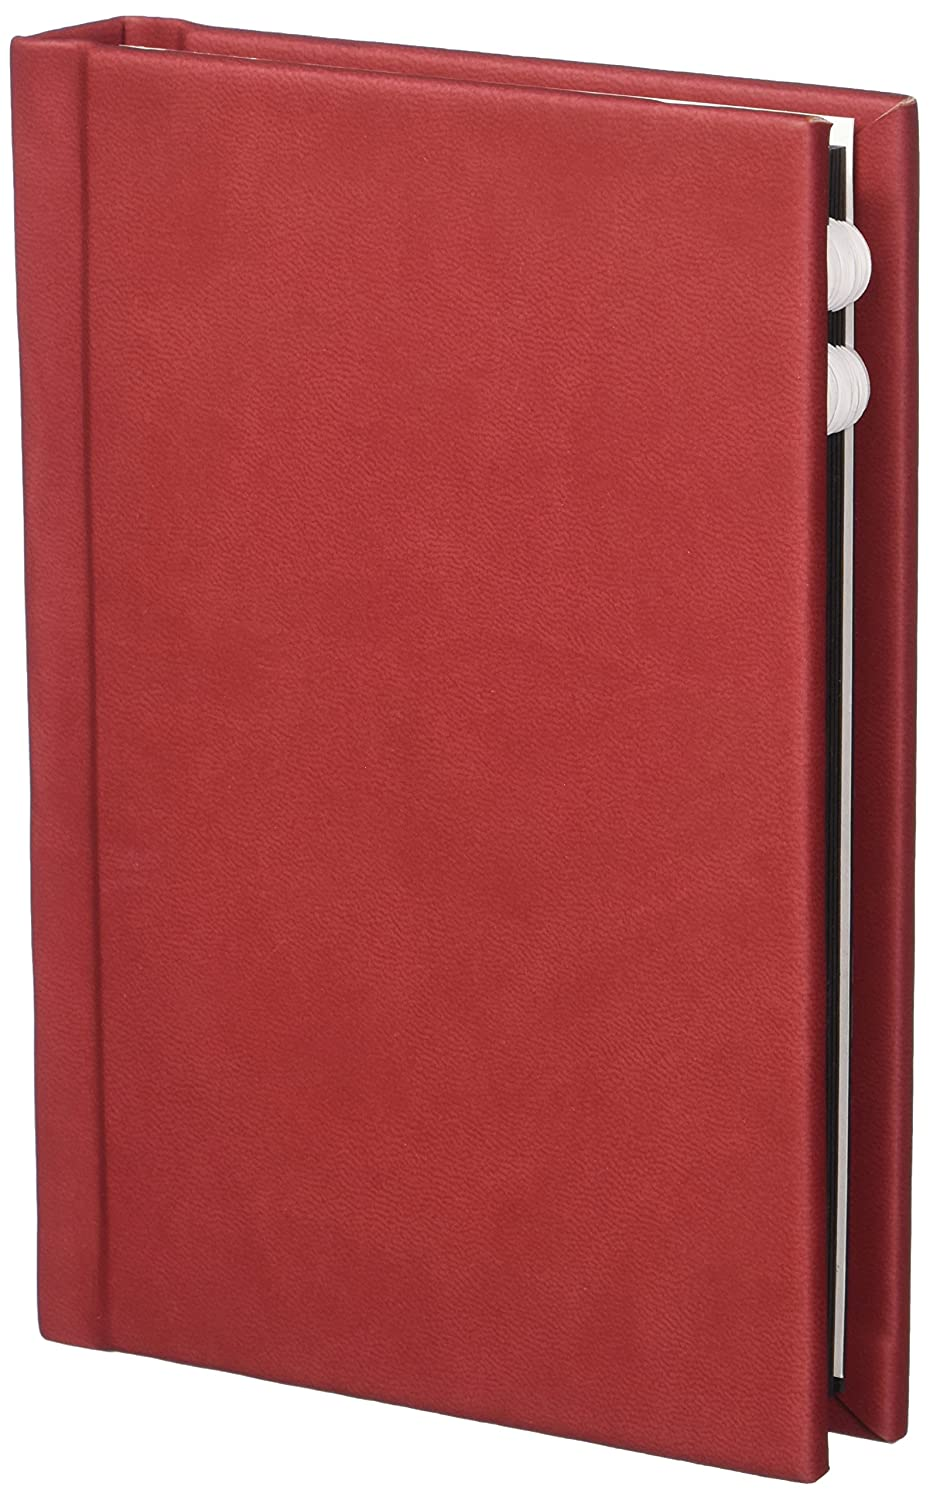 Tap ASMB461 Superior Mount Photo Album 4 x 6 10 Page Blue